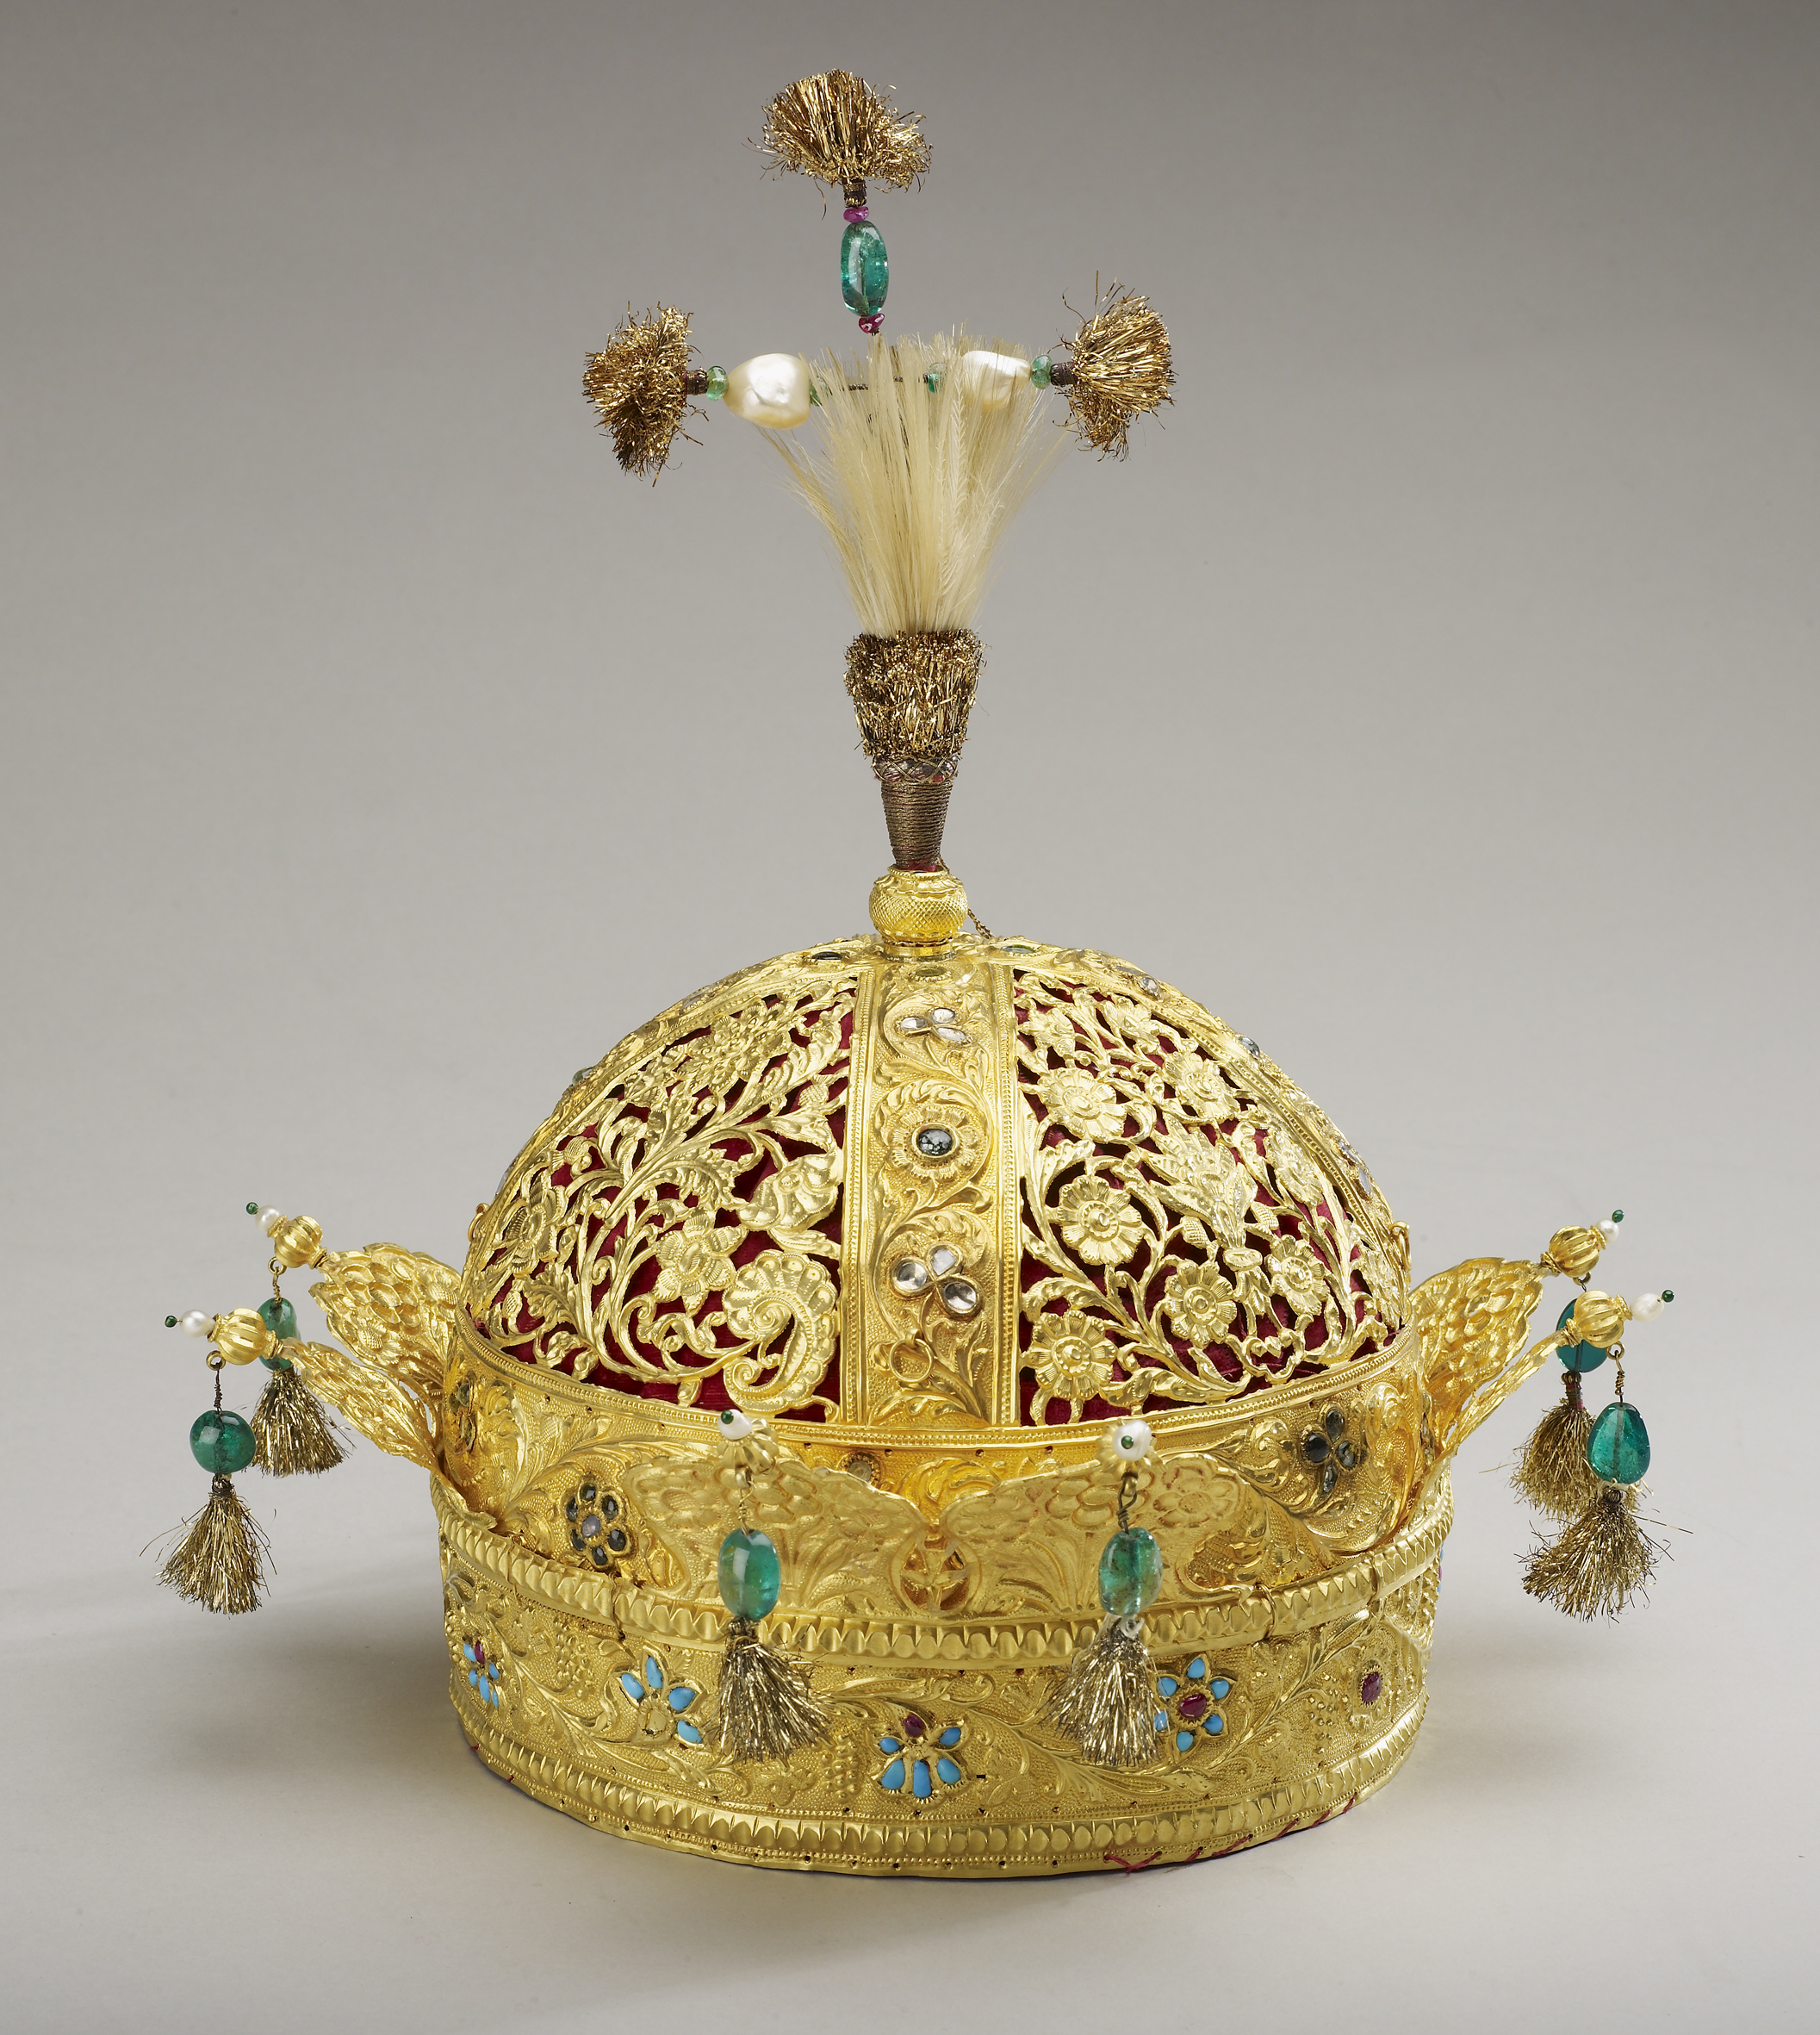 Crown of Emperor Bahadur Shah II mid-19th century on display in Mughal India on loan from the Royal Collection Trust Her Majesty Queen Elizabeth II 2012